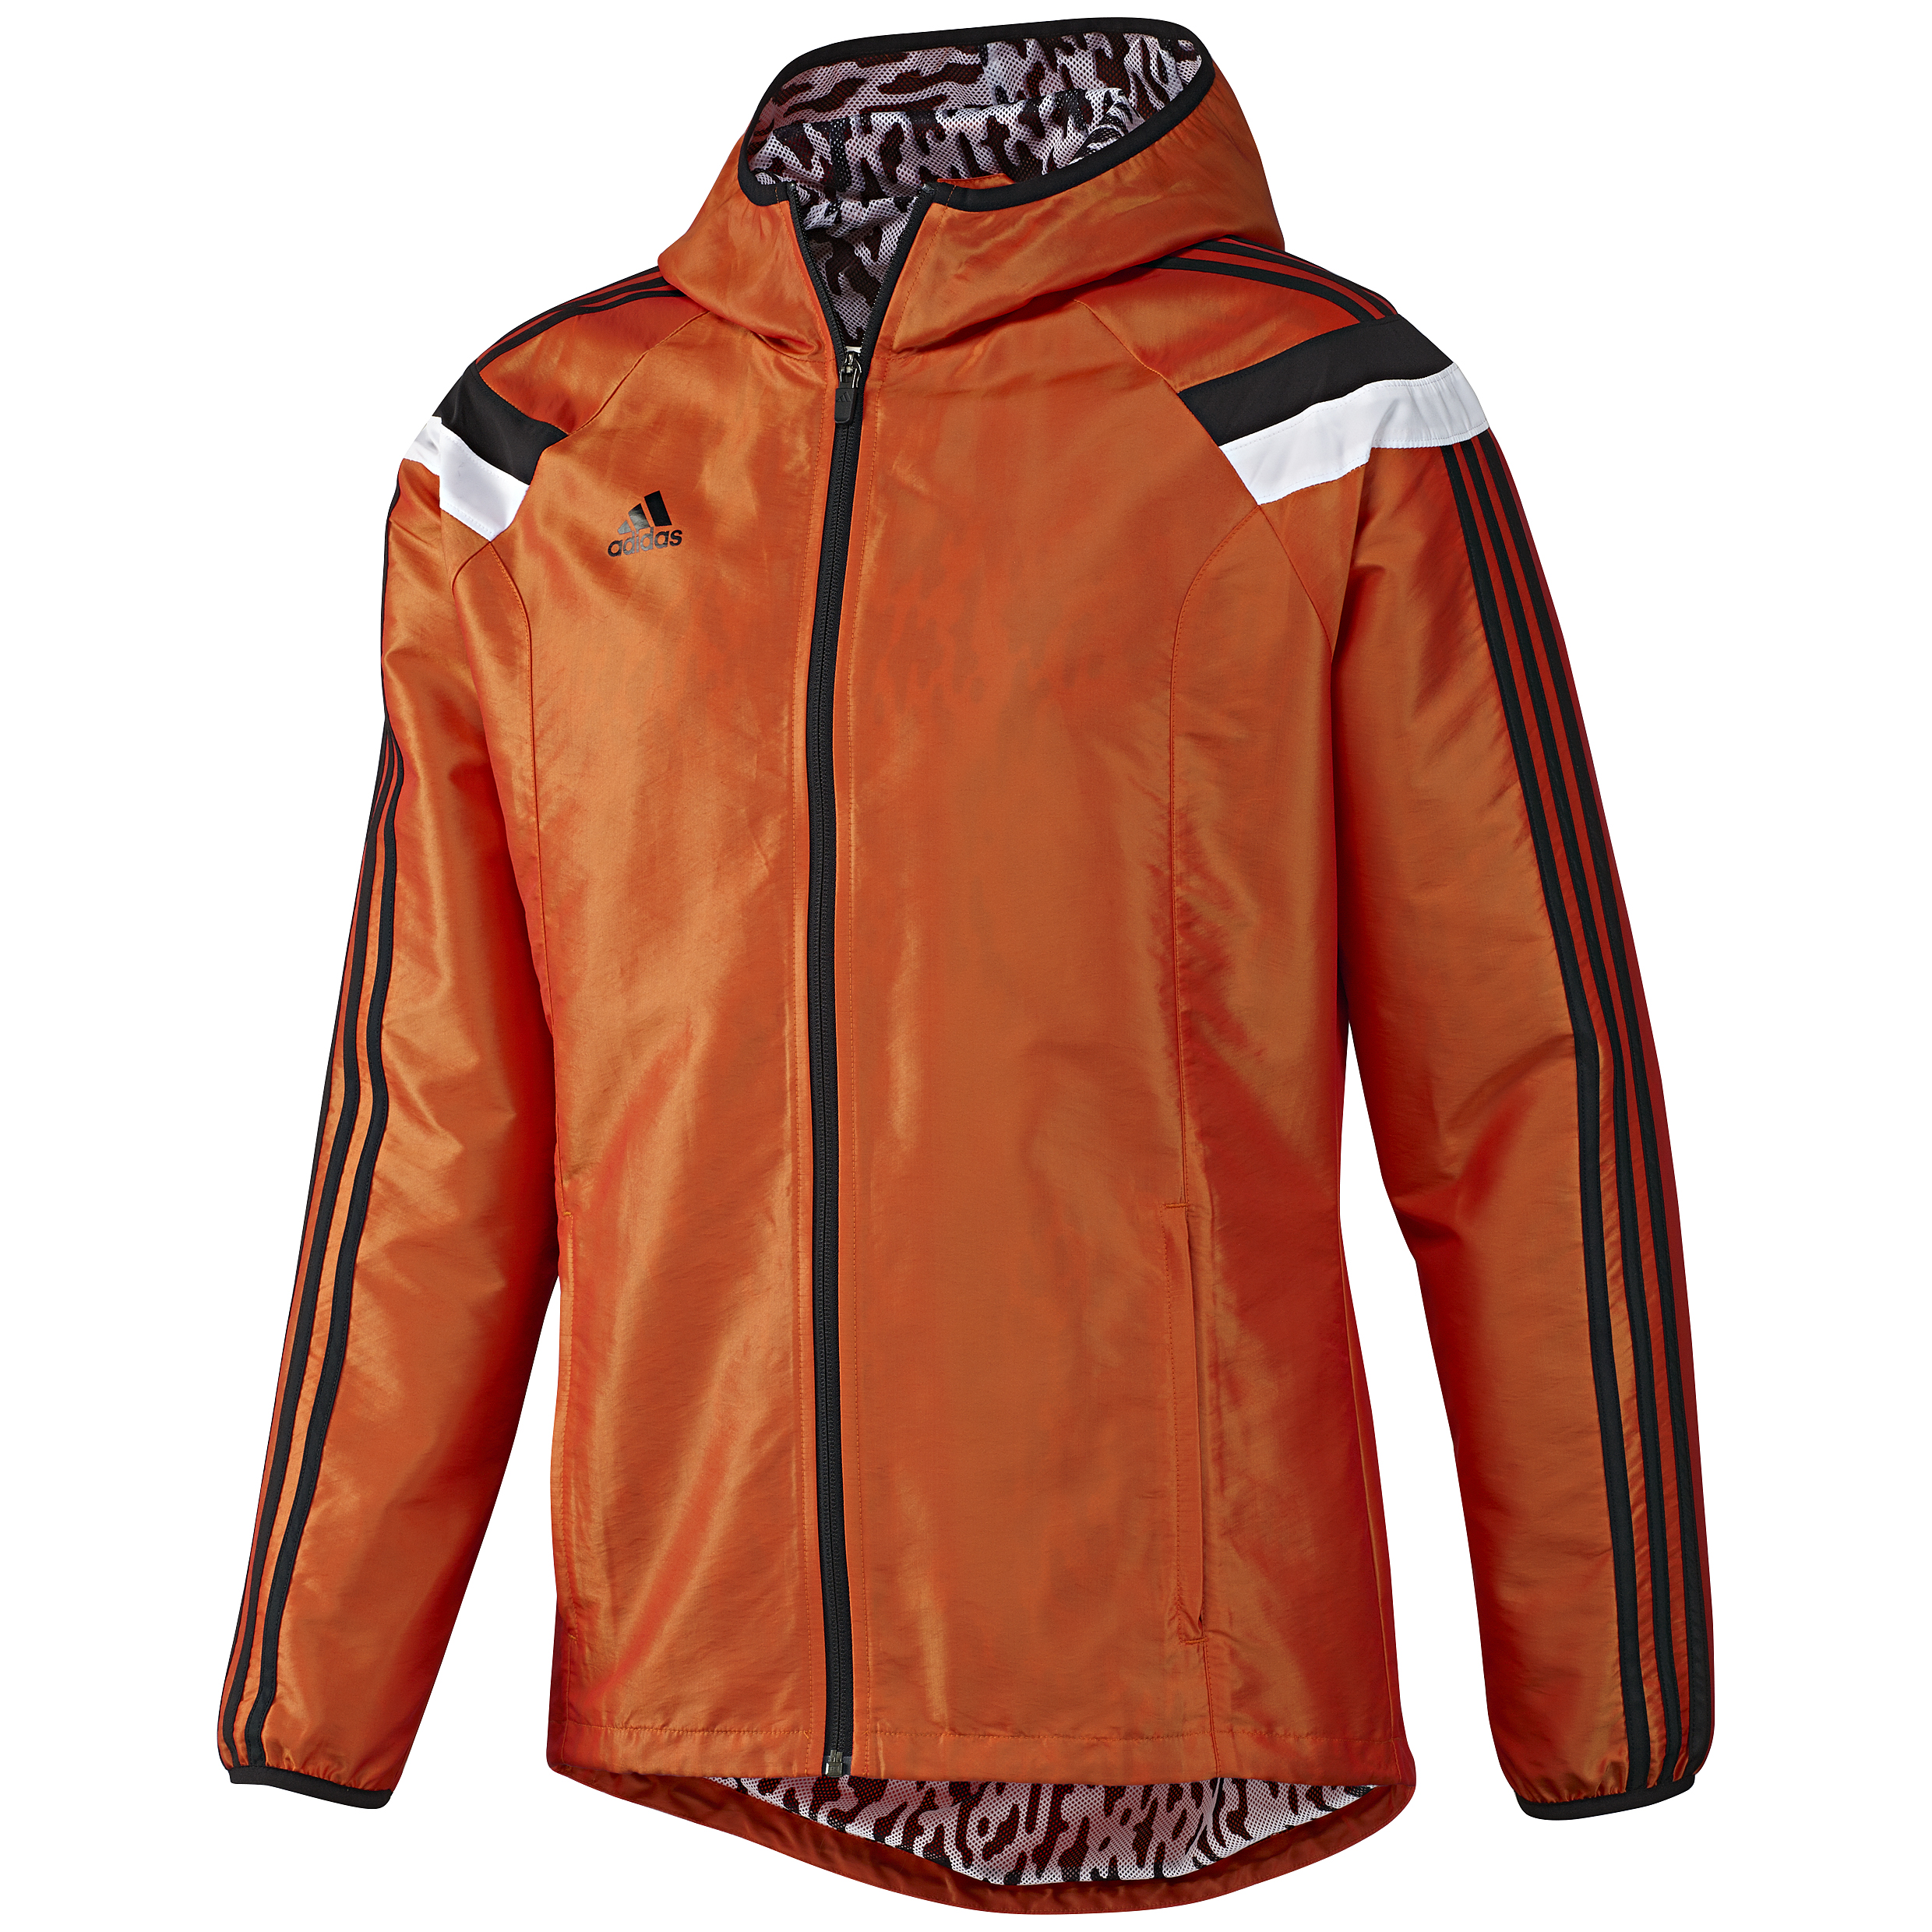 Adidas World Cup Woven Jacket Orange